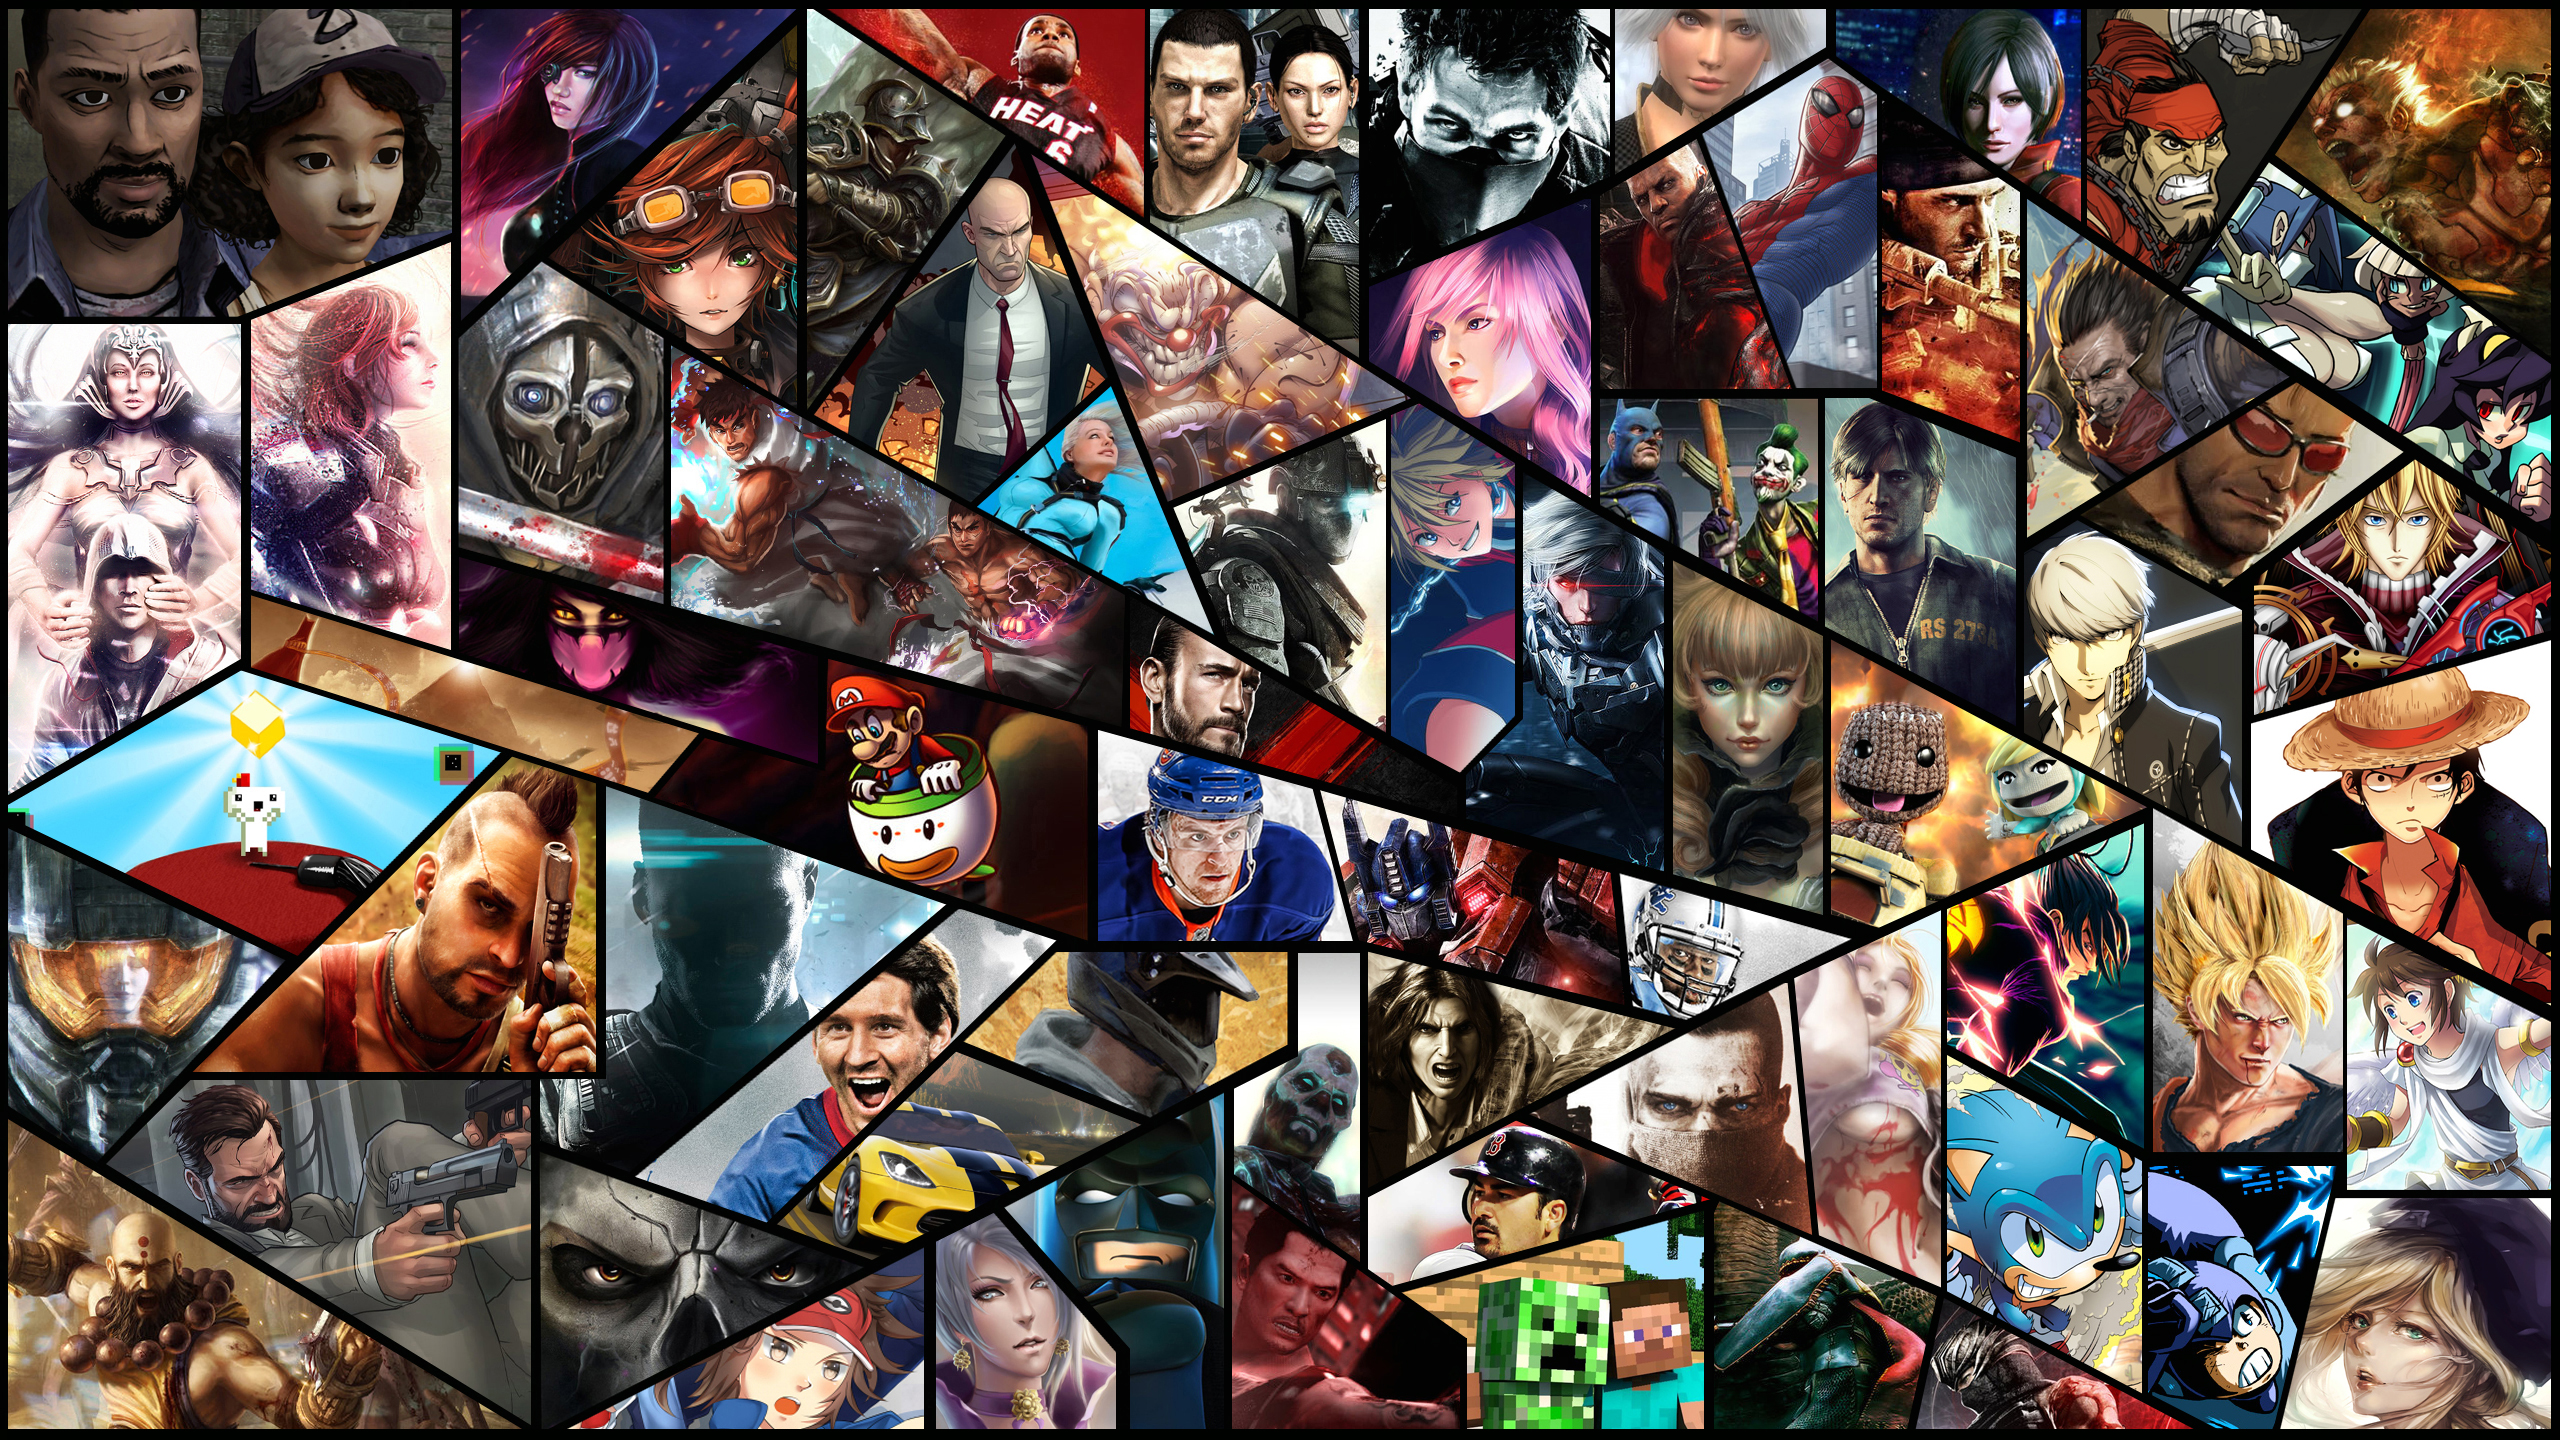 games_of_2012_wallpaper_by_kiritio-d5otwn8.jpg